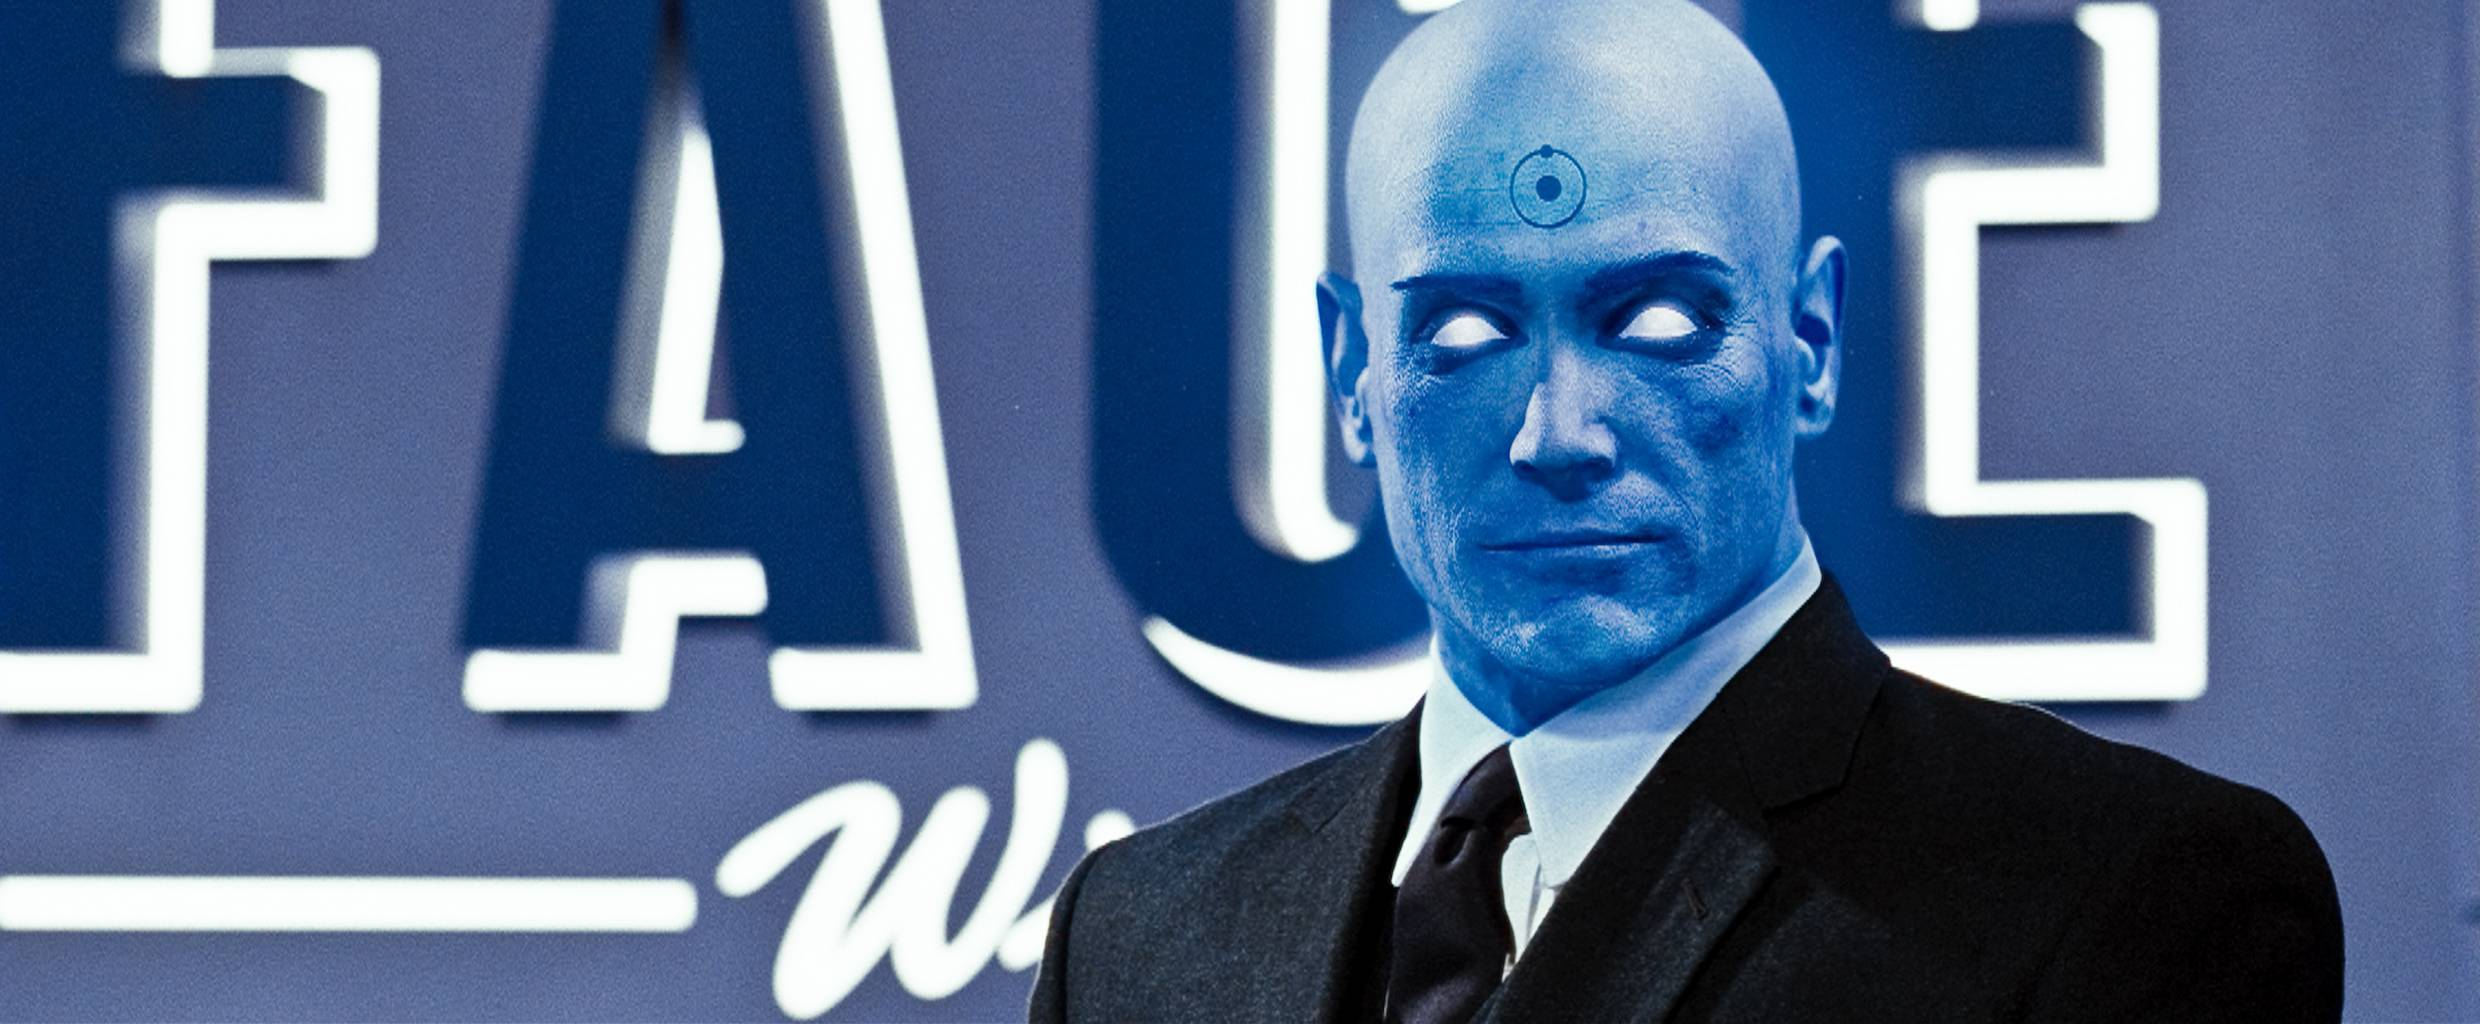 Dr. Manhattan Watchmen HD Wallpaper